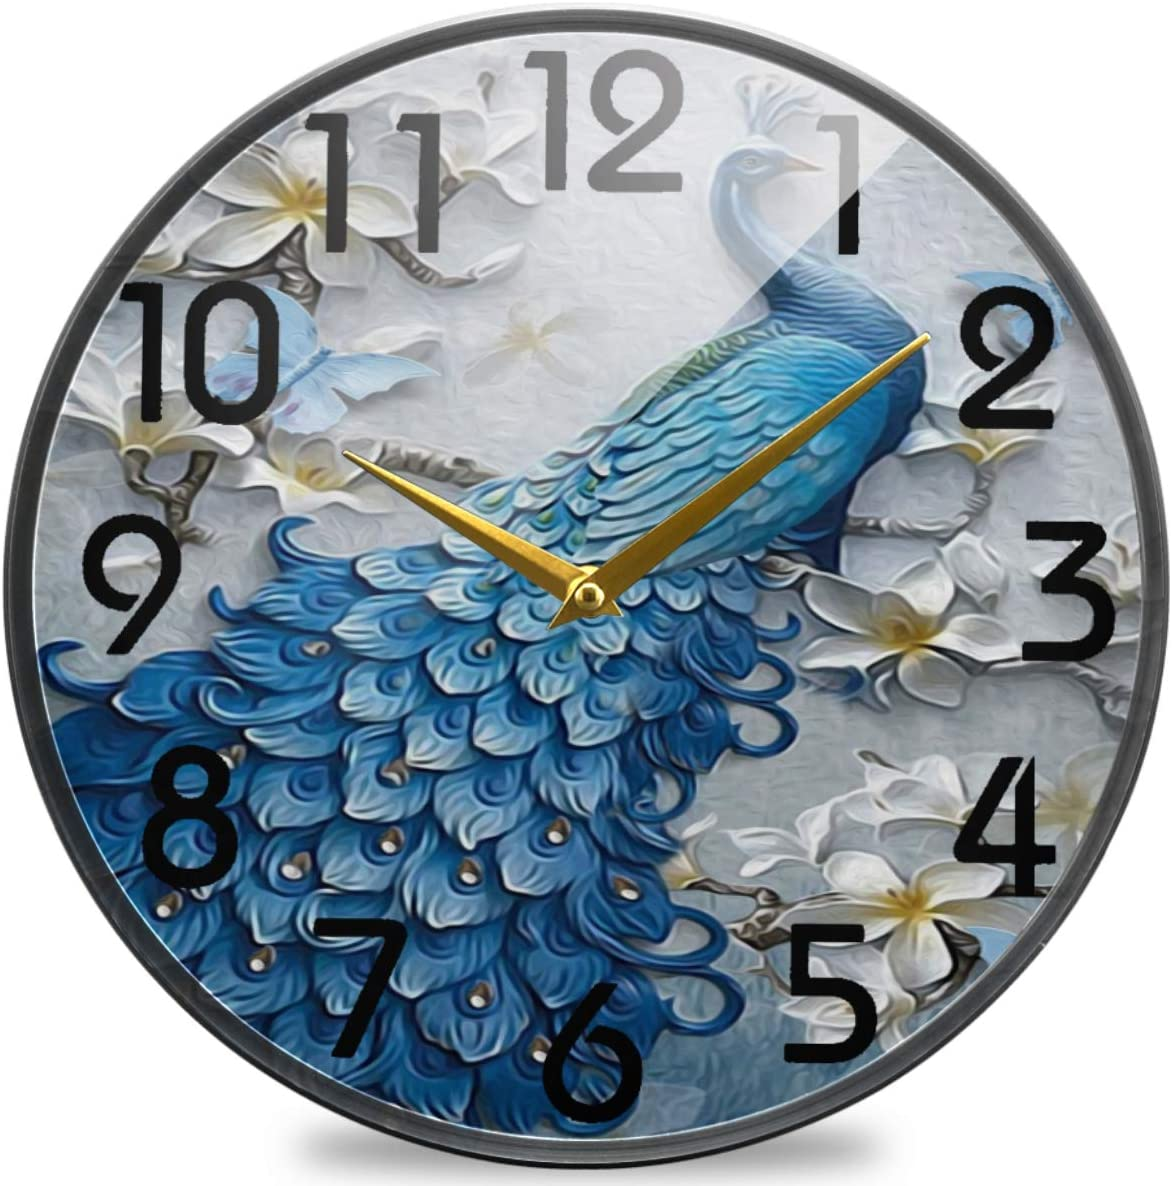 Ranking Super sale period limited TOP10 Naanle 3D Wall Beautiful Peacock Print Flowers Round